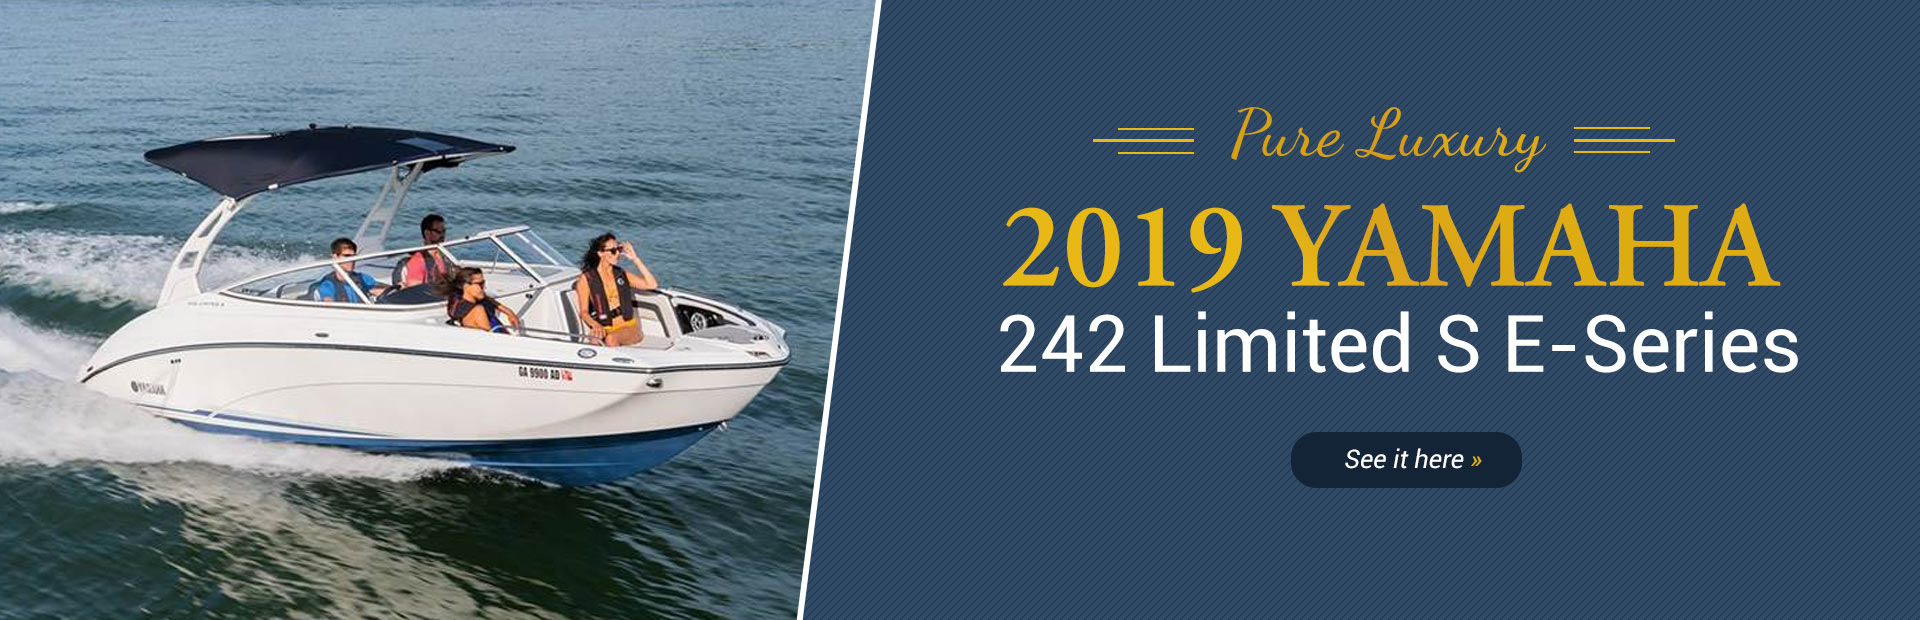 2019 Yamaha 242 Limited S E-Series: Click here to view the model.